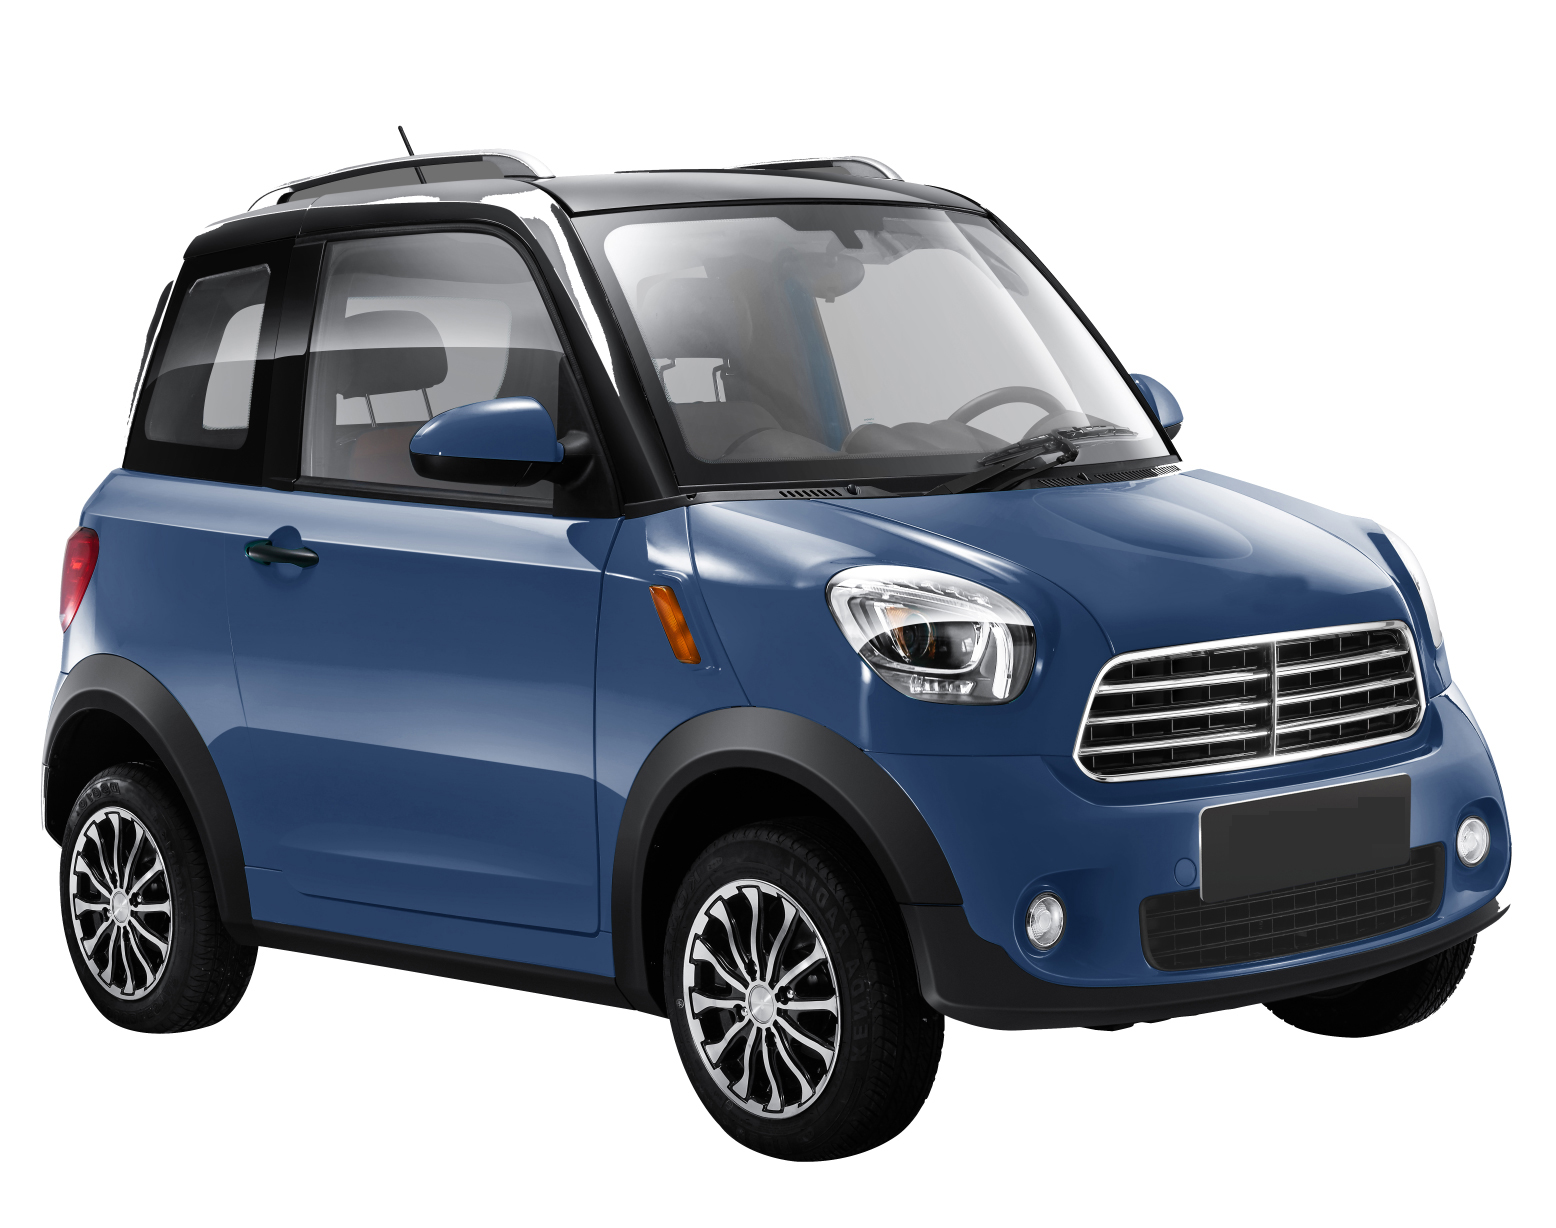 EBU 2020 Hot Sales Of Four-Seat 5-Door Cheap Electric Cars Made In China New+Cars